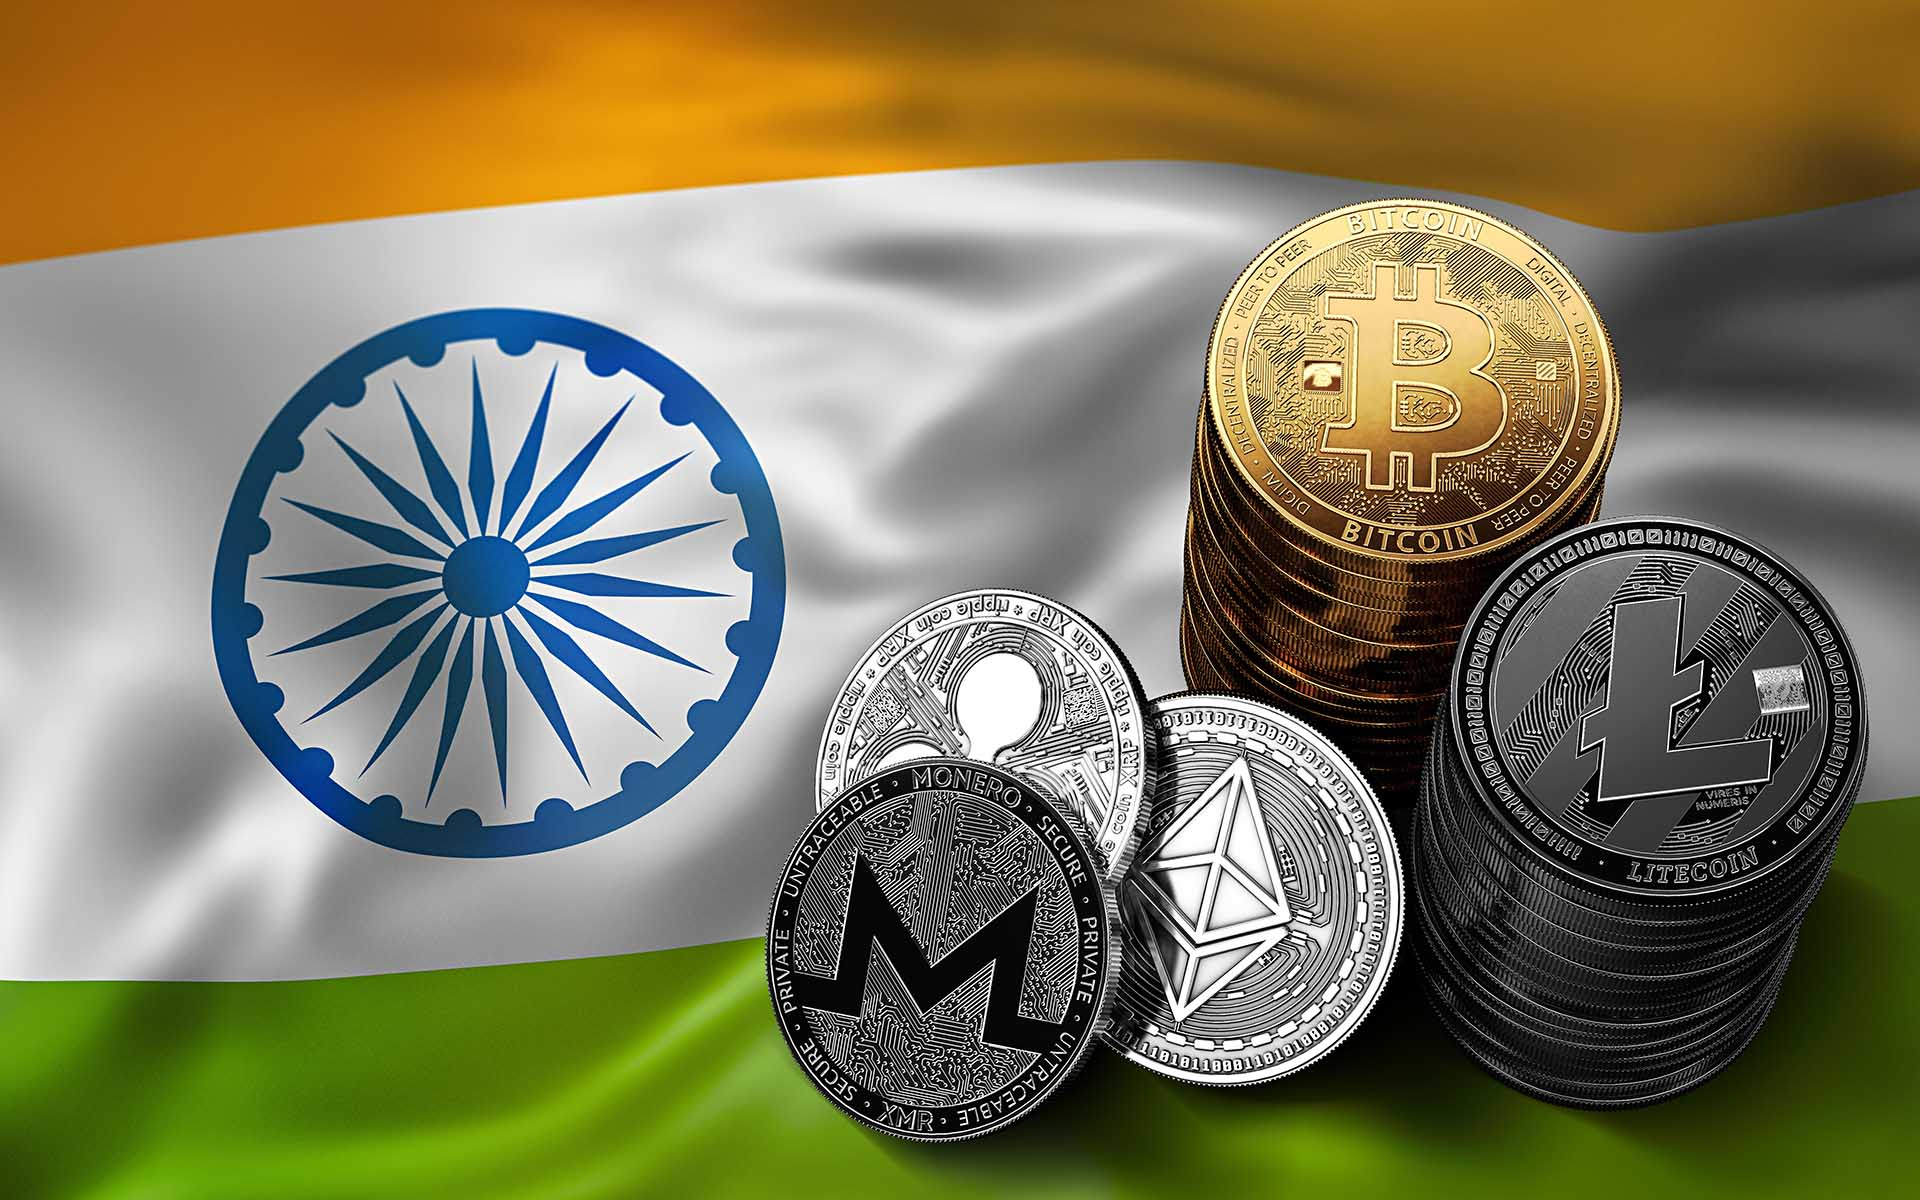 Indian government looking to crack down on crypto scams with proposed ban: Cashaa CEO